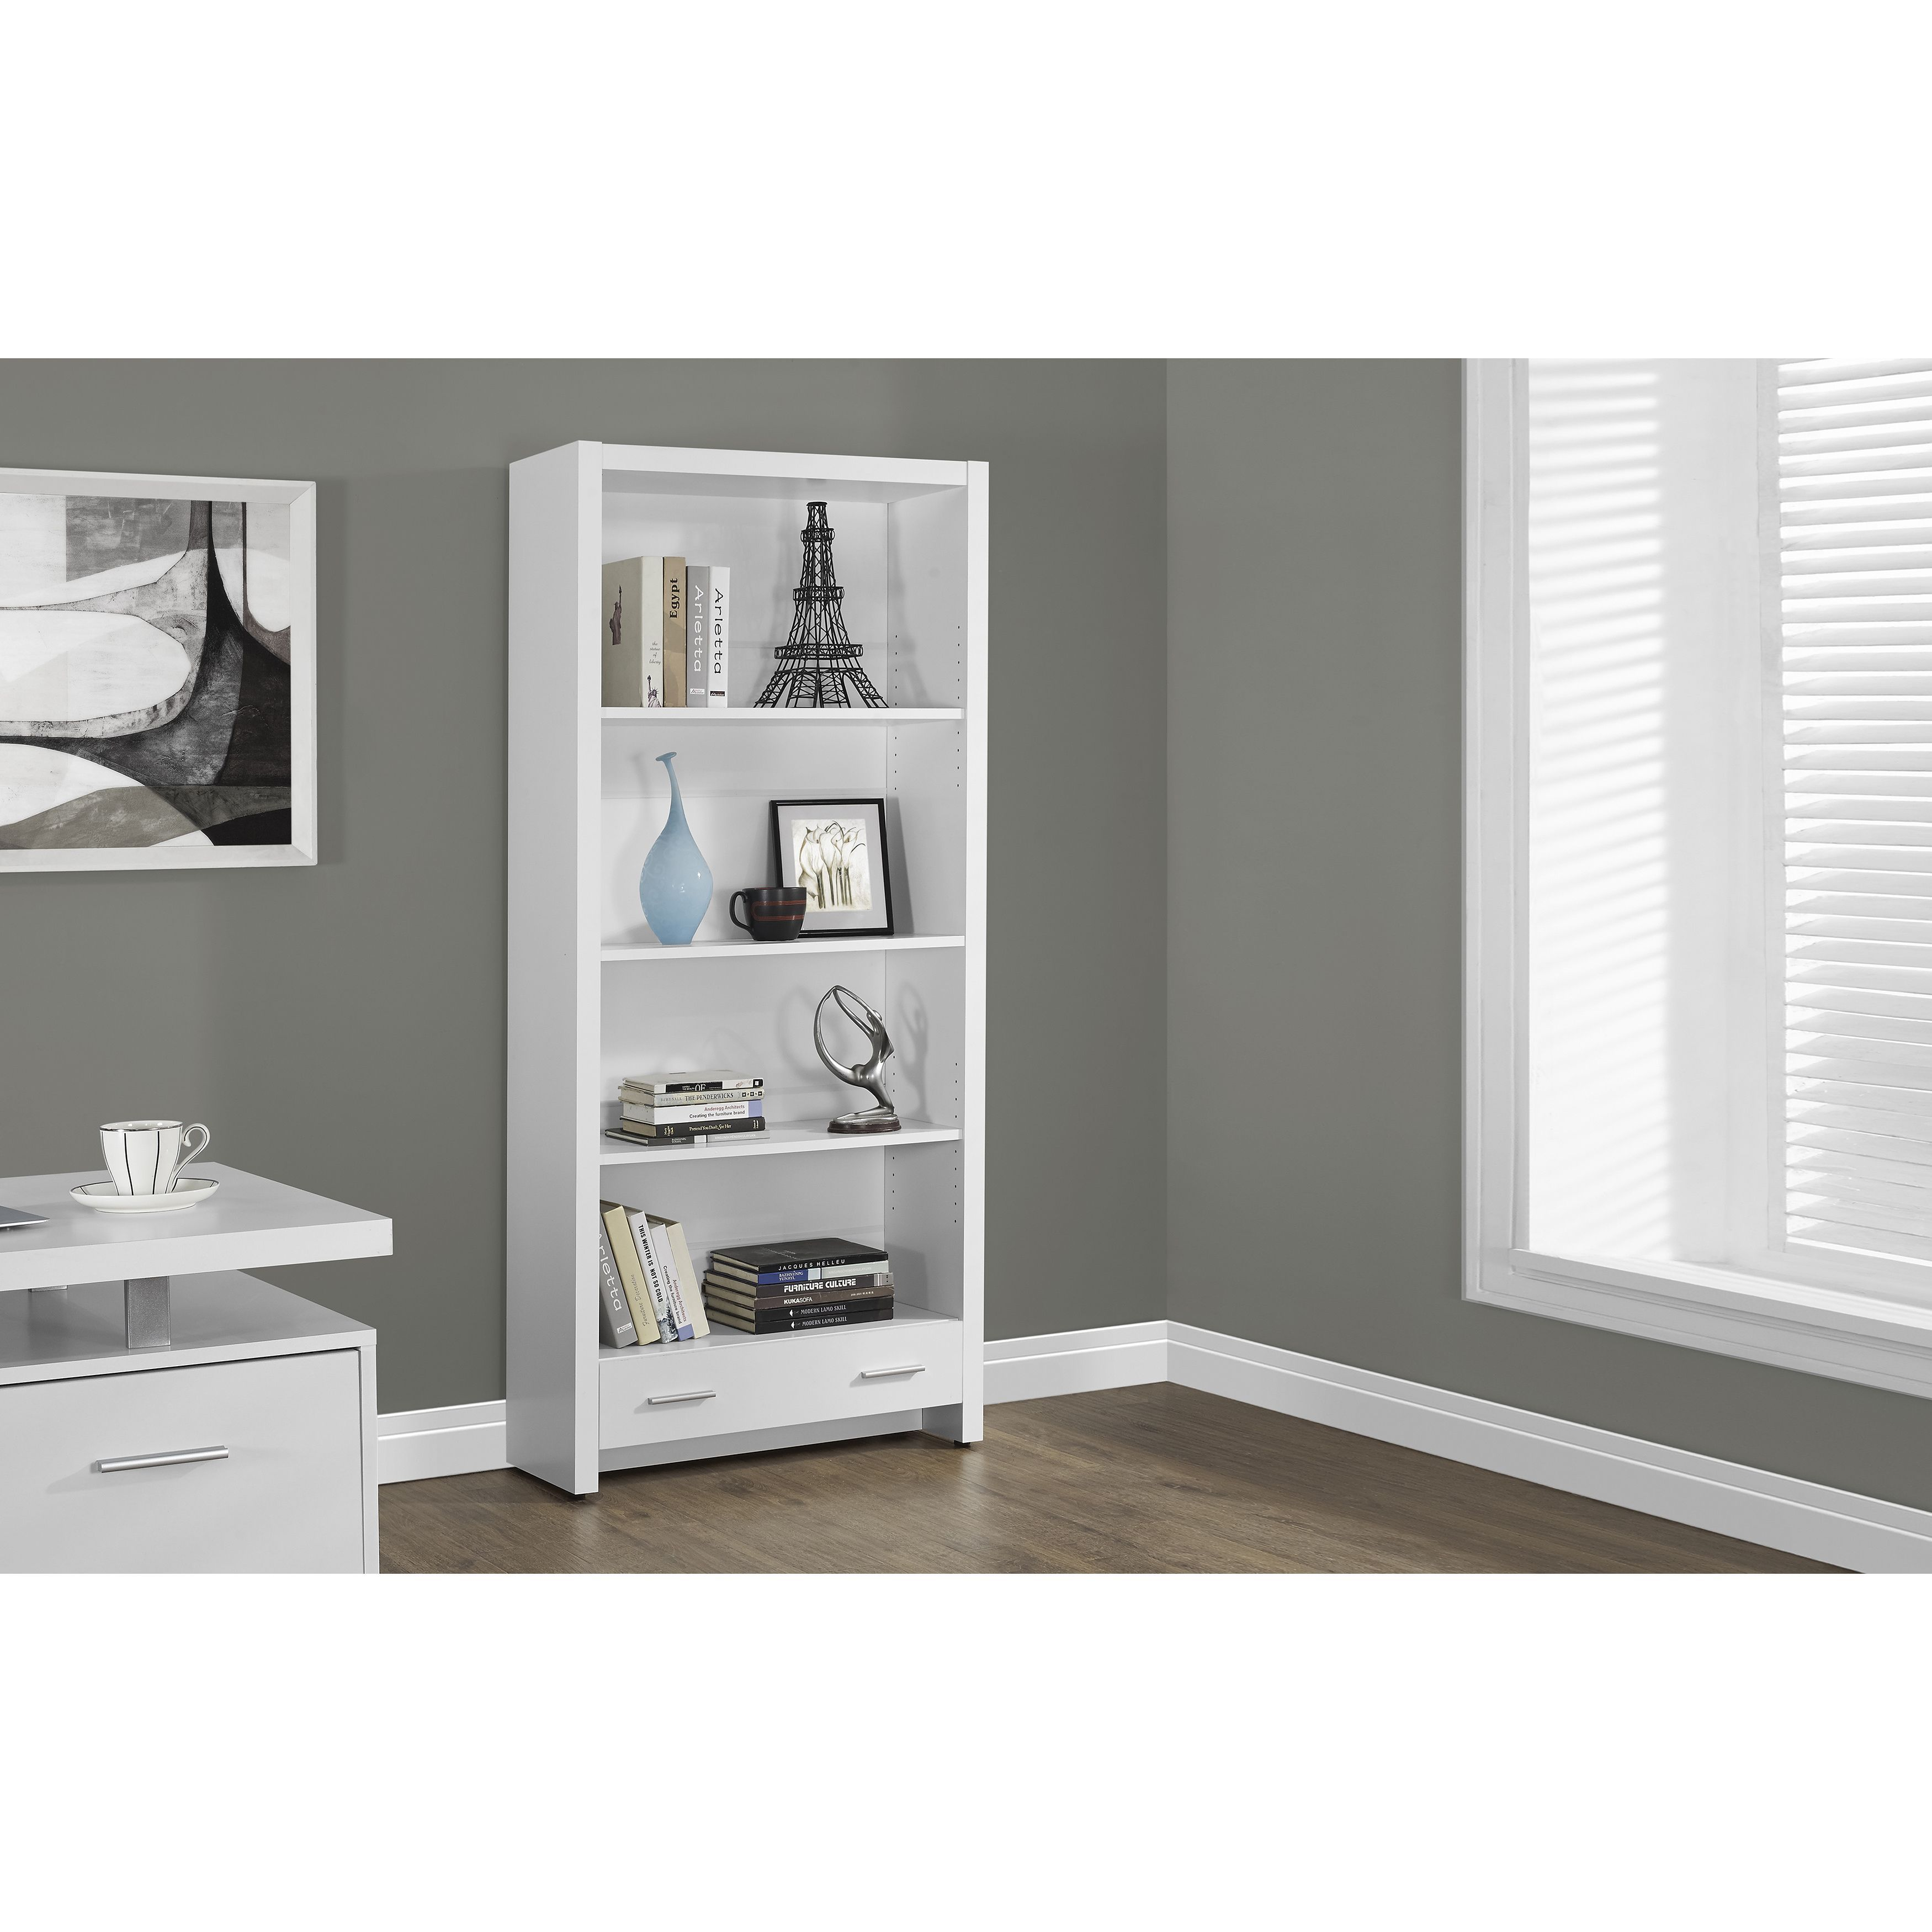 Add a modern touch to your decor with this white tier bookcase